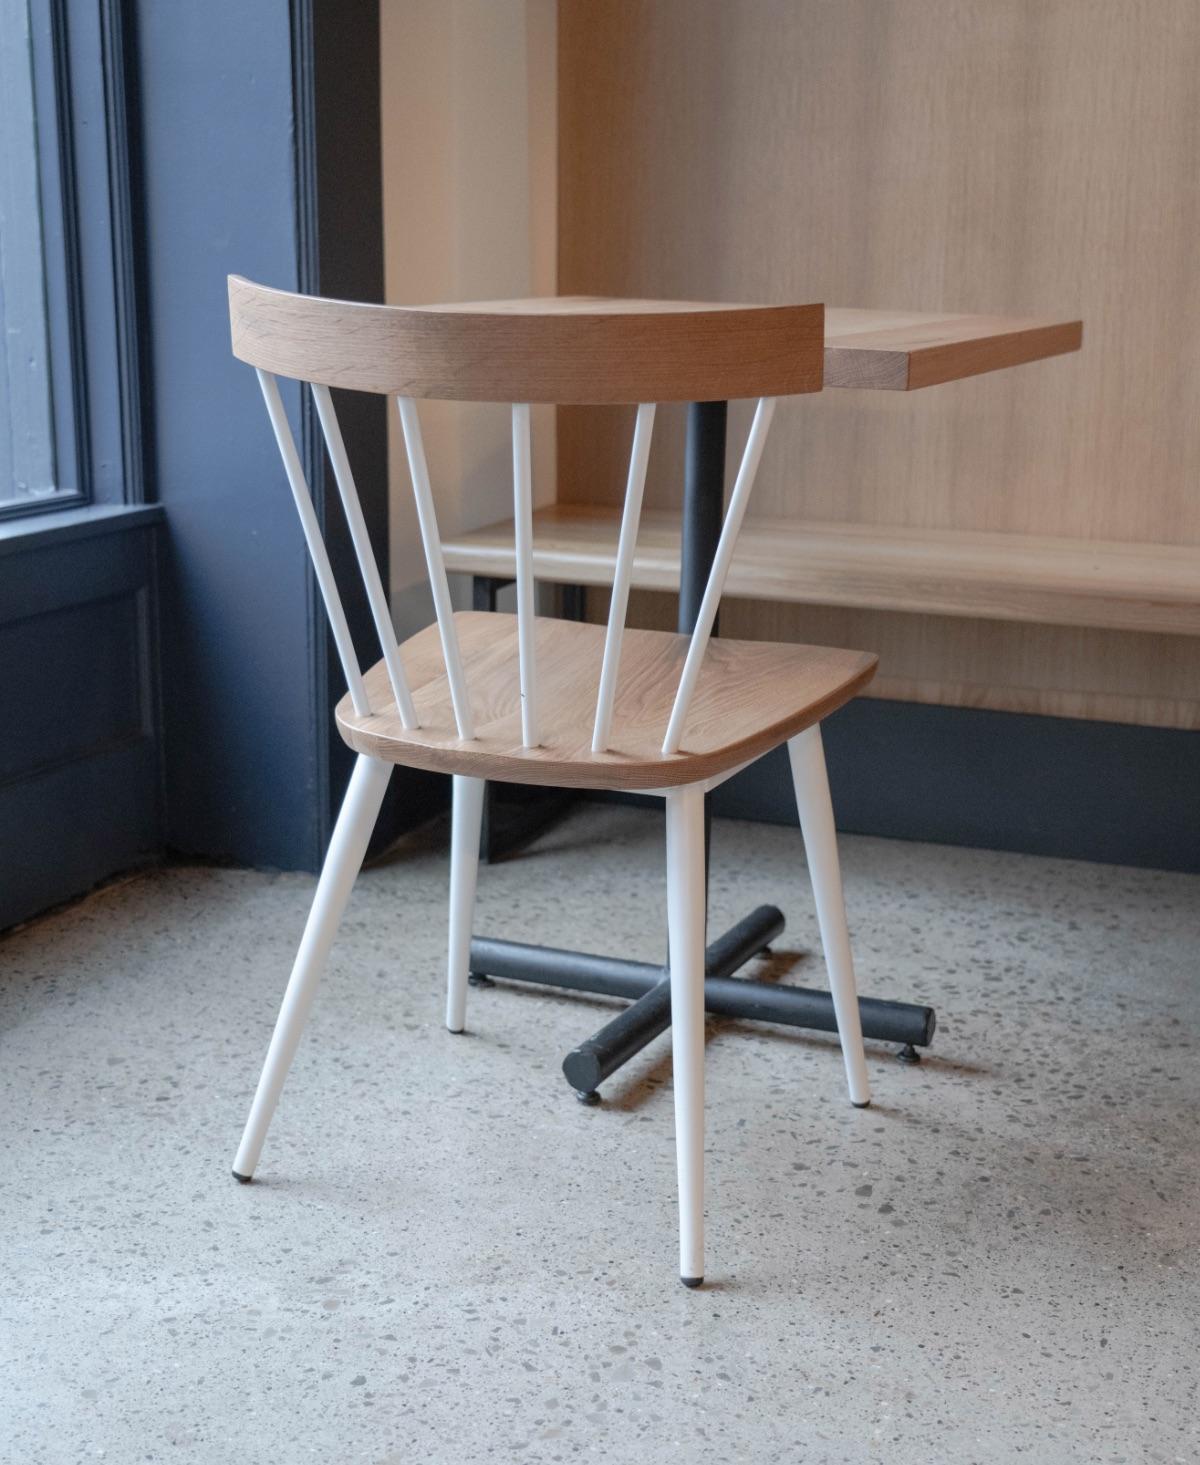 Compass chair in Sea Salt metal and Cask finished American white oak